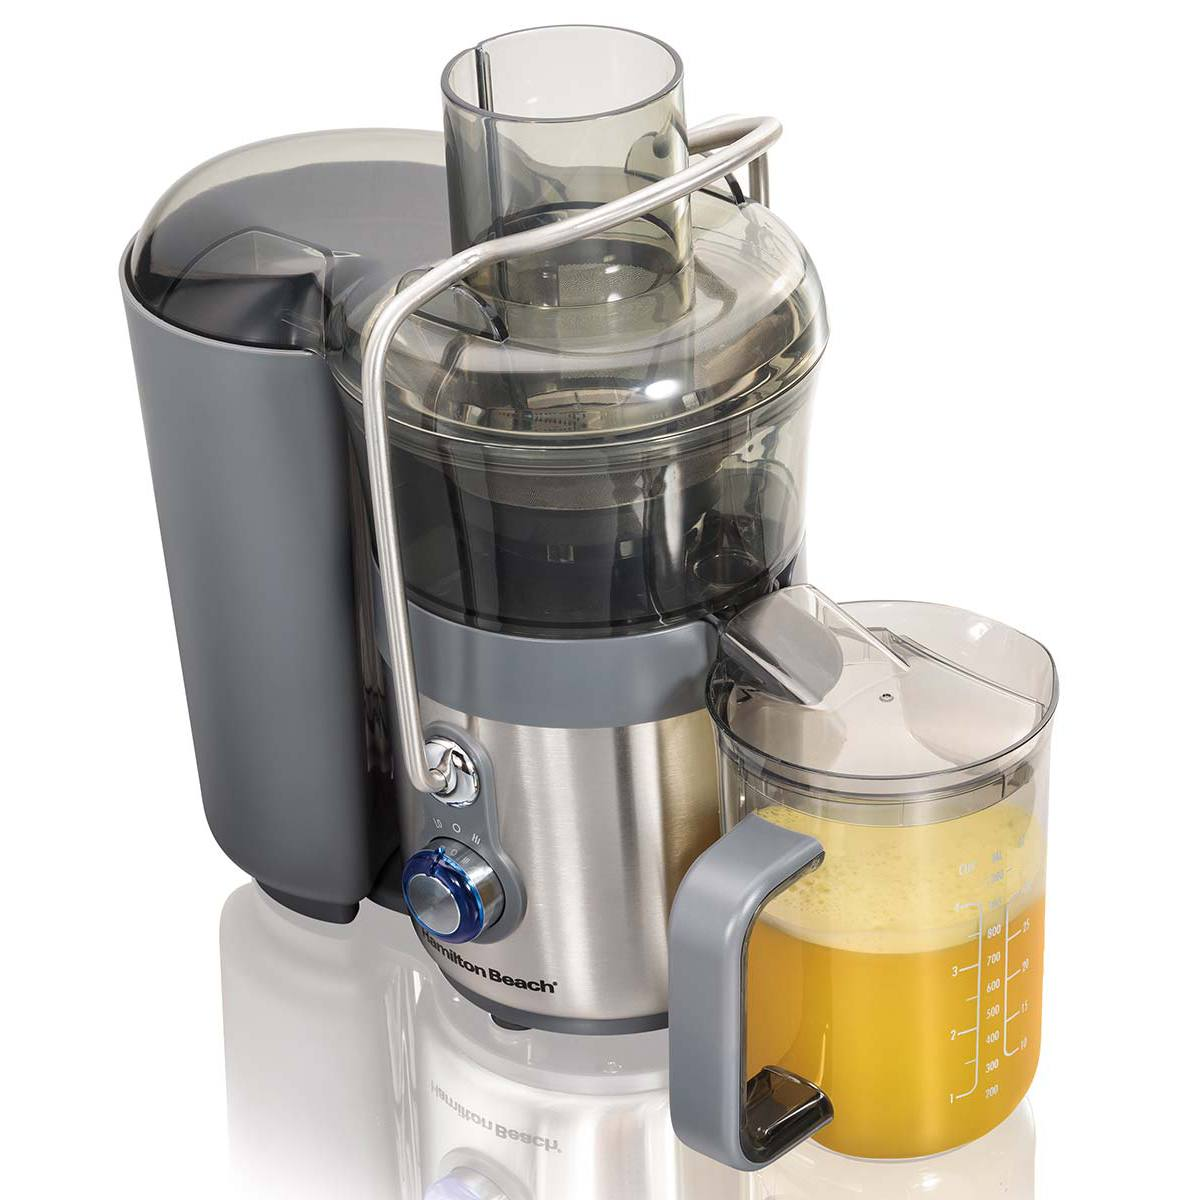 Big Mouth® Premium Juice Extractor, 2 Speeds (67850)